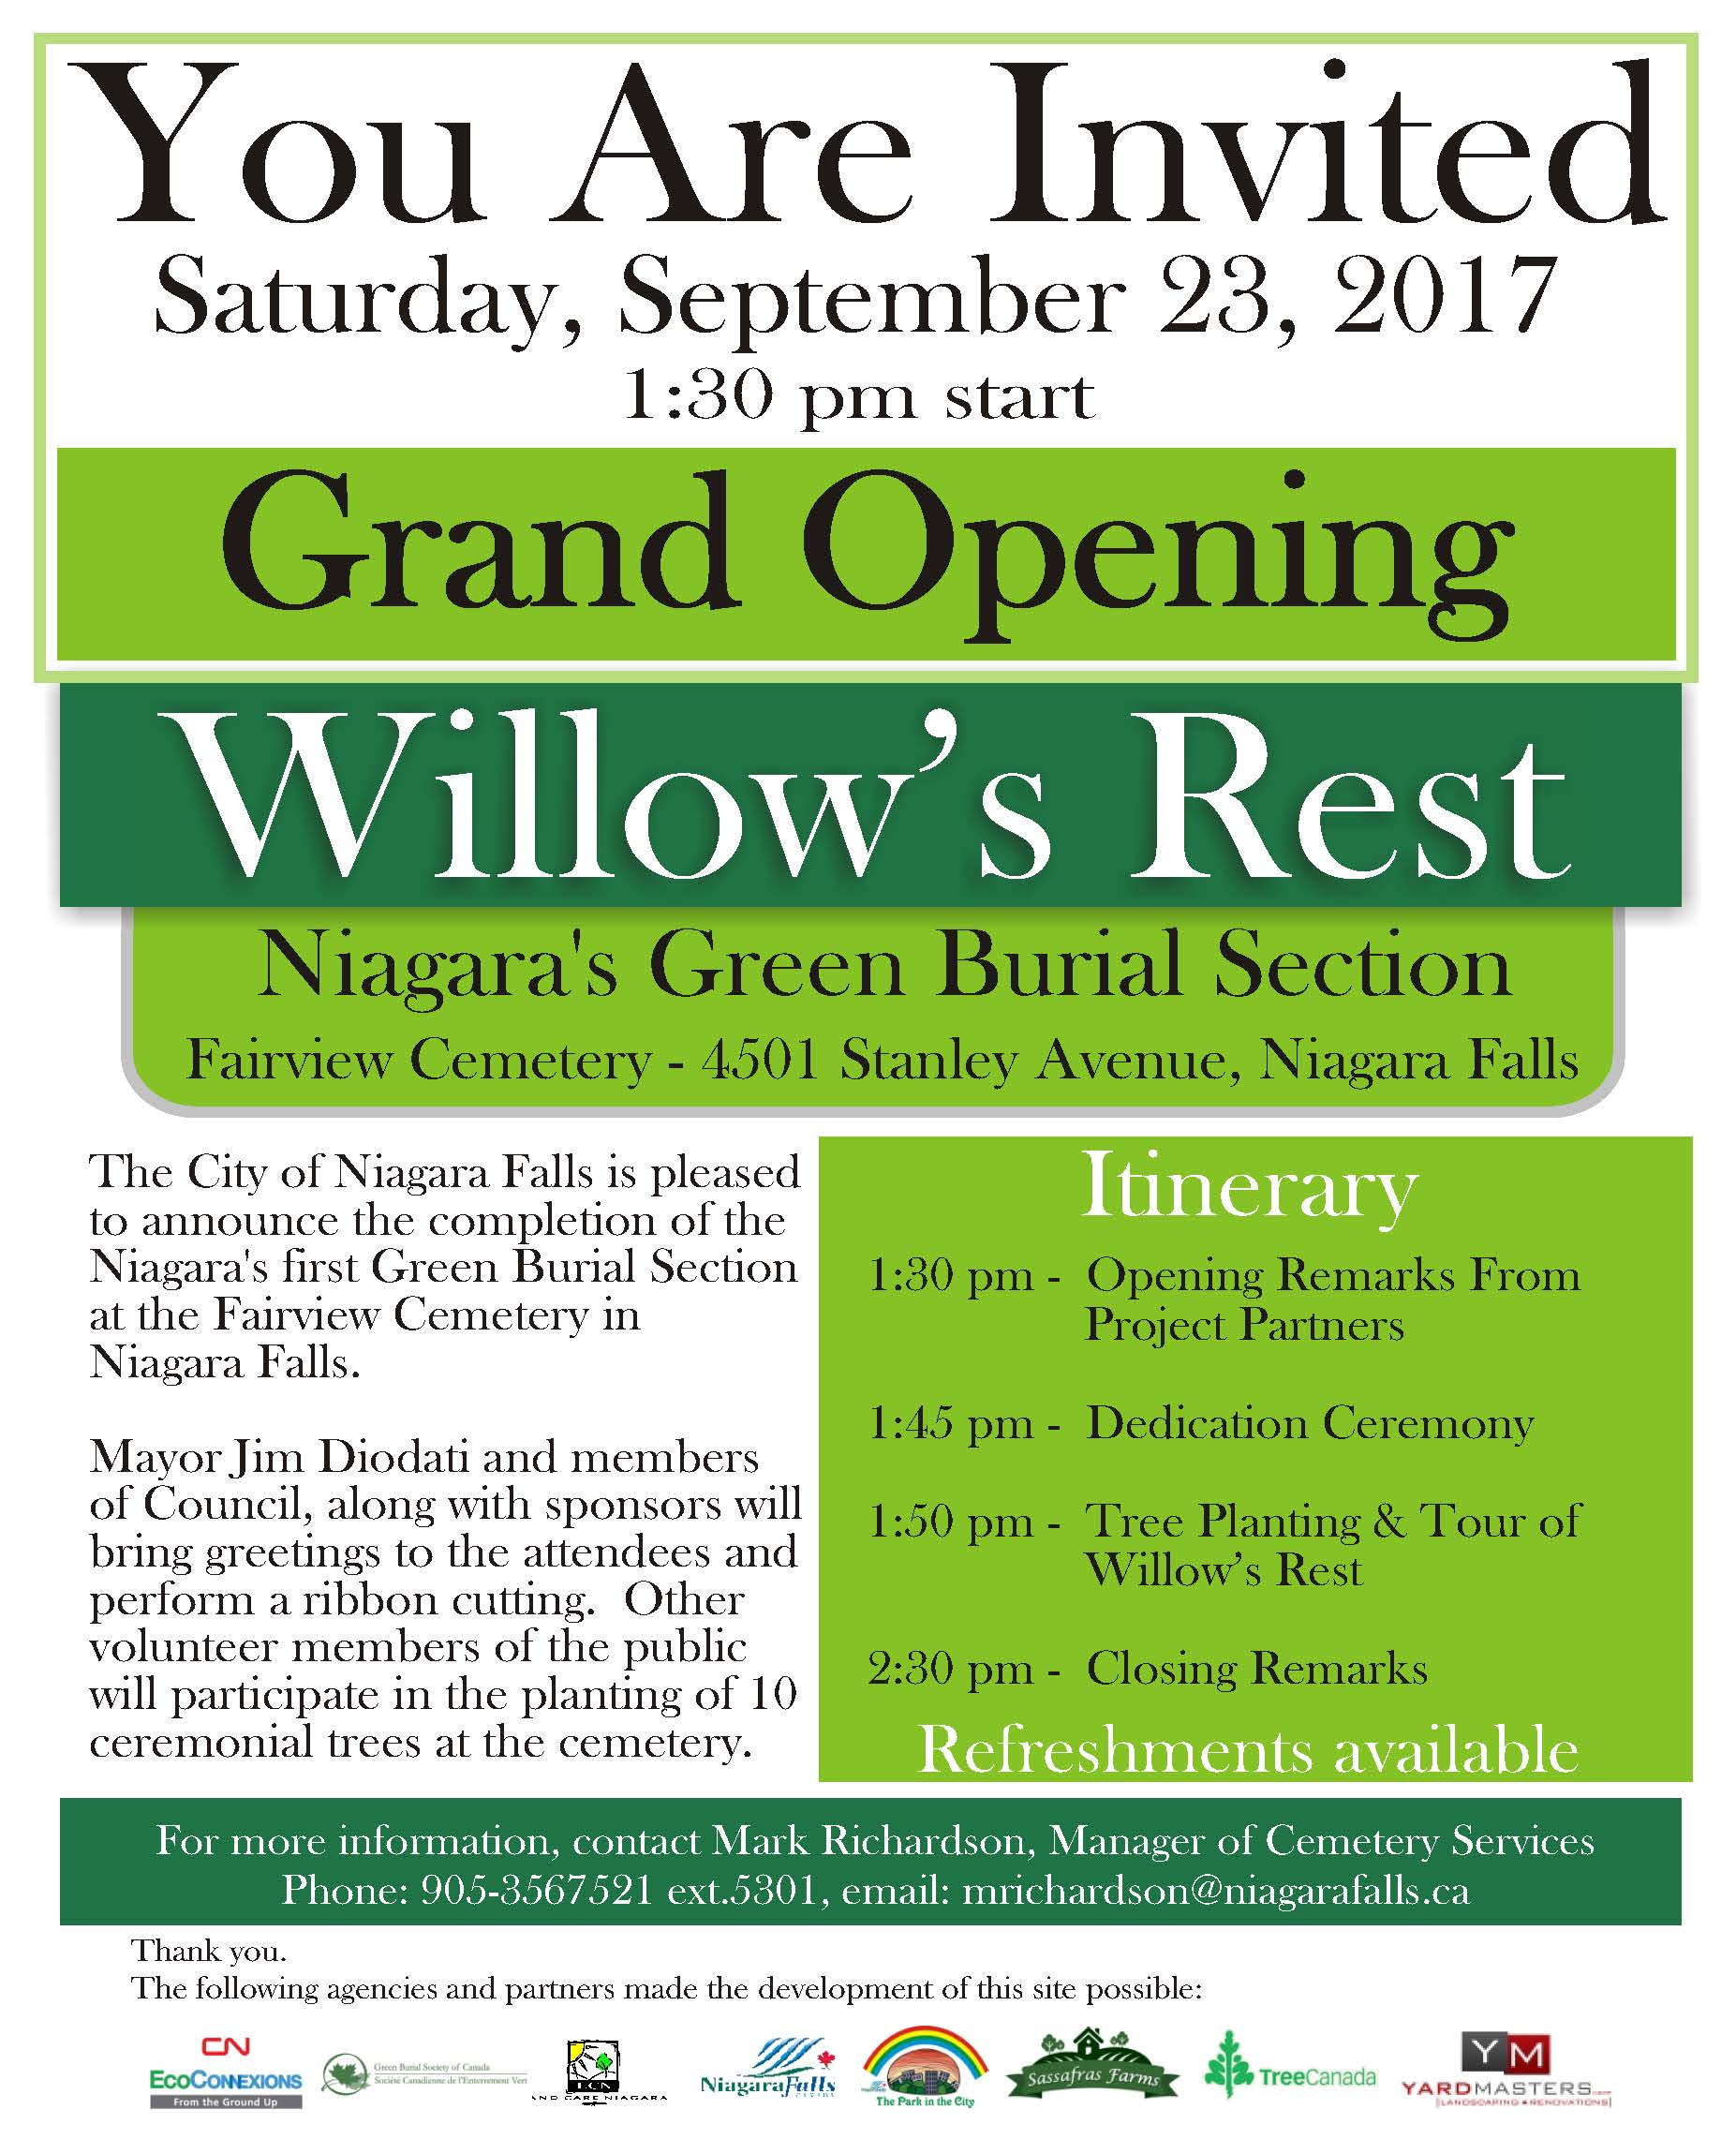 Willow's Rest Grand Opening Information.jpg